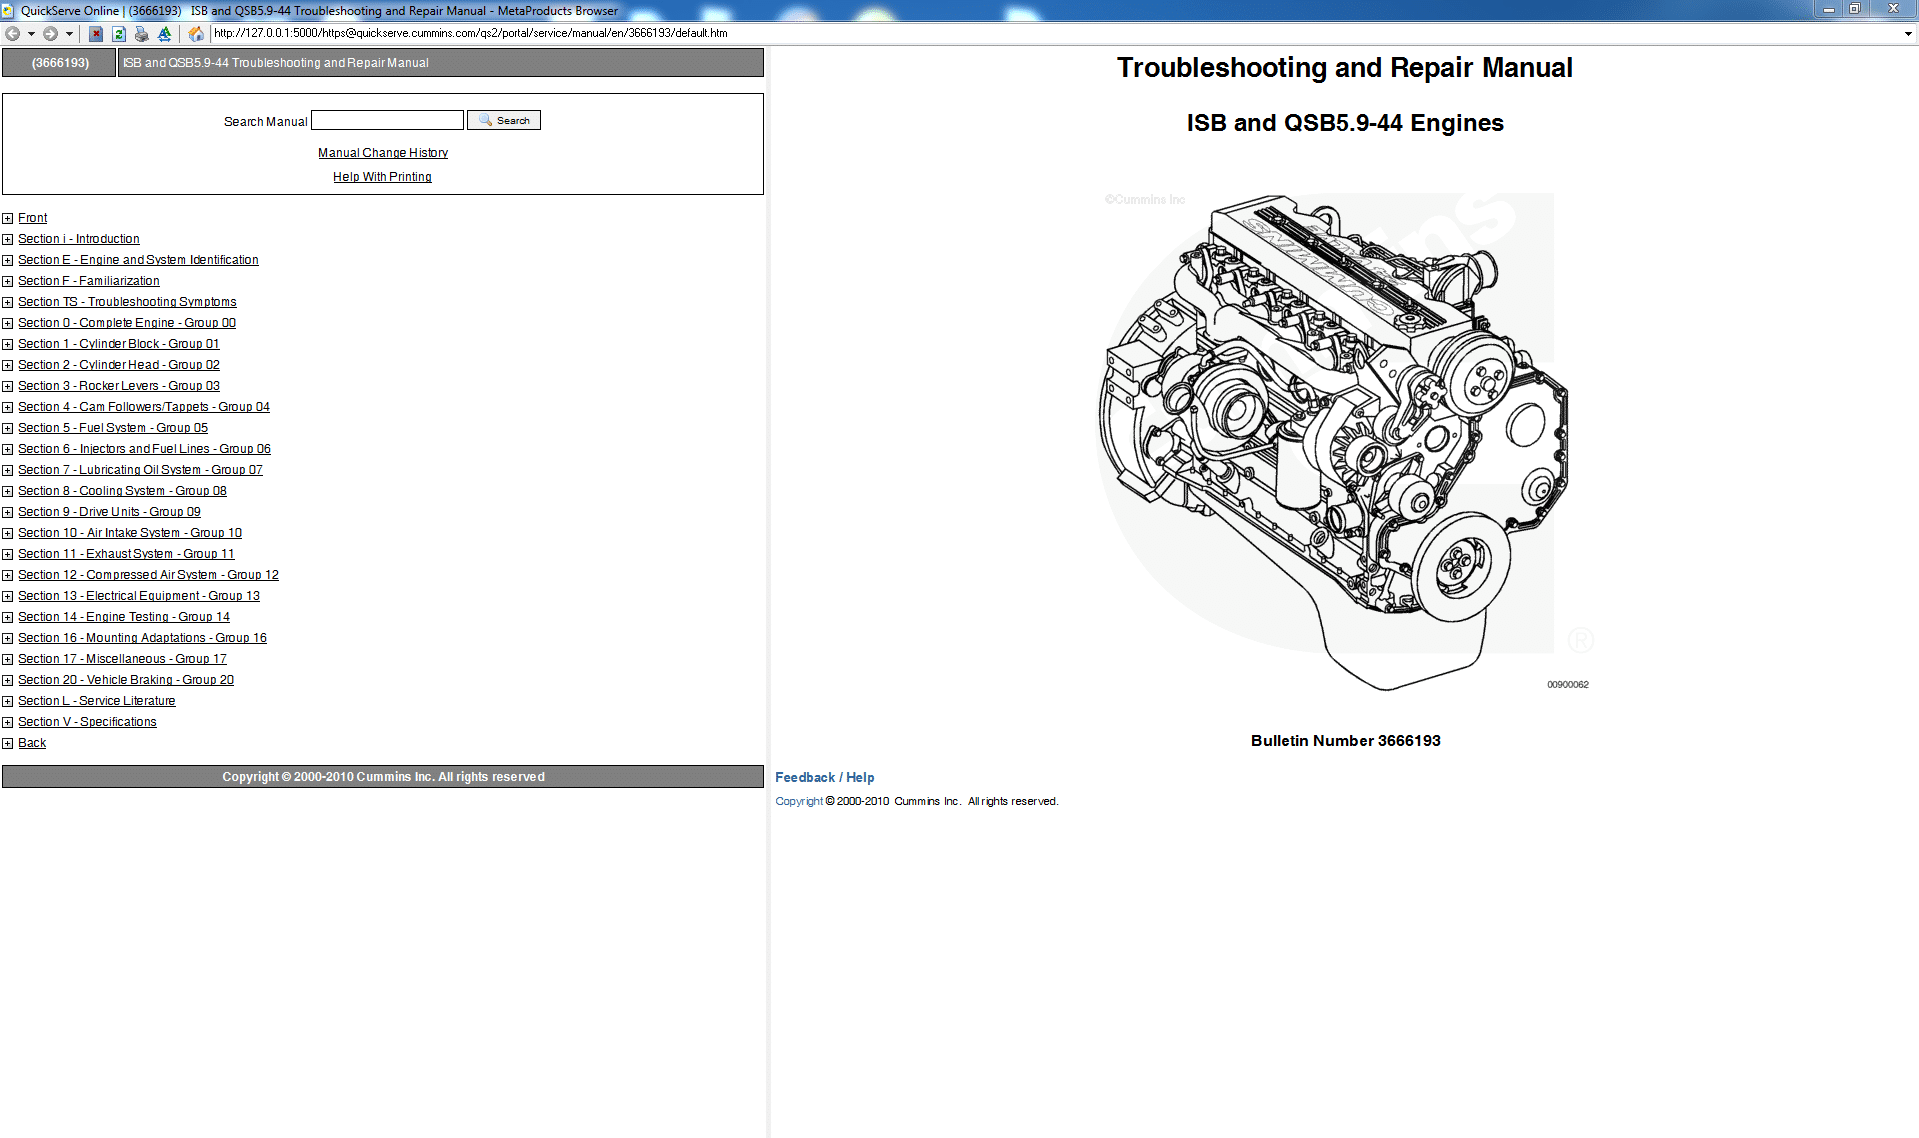 Cummins Troubleshooting and Repair Manual ISB and QSB5.9